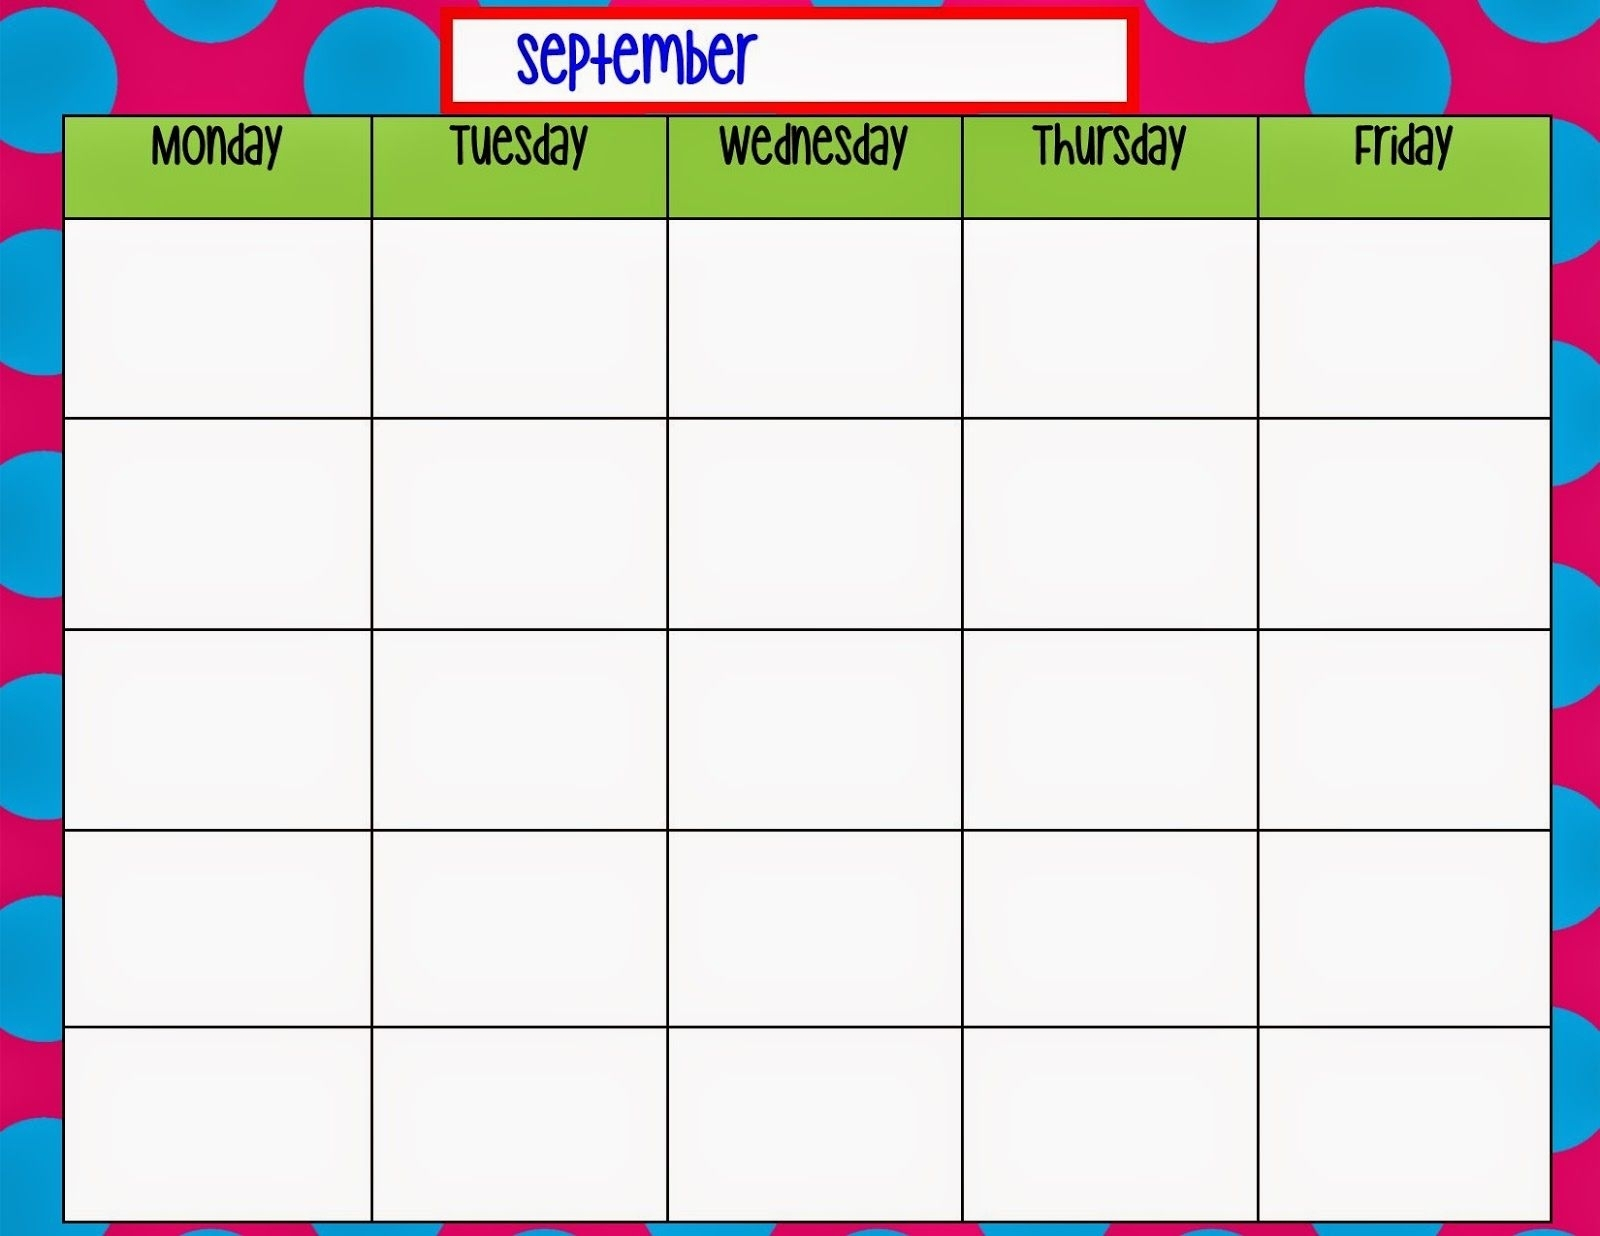 Monday Through Friday Monthly Calendar | Calendar Printing